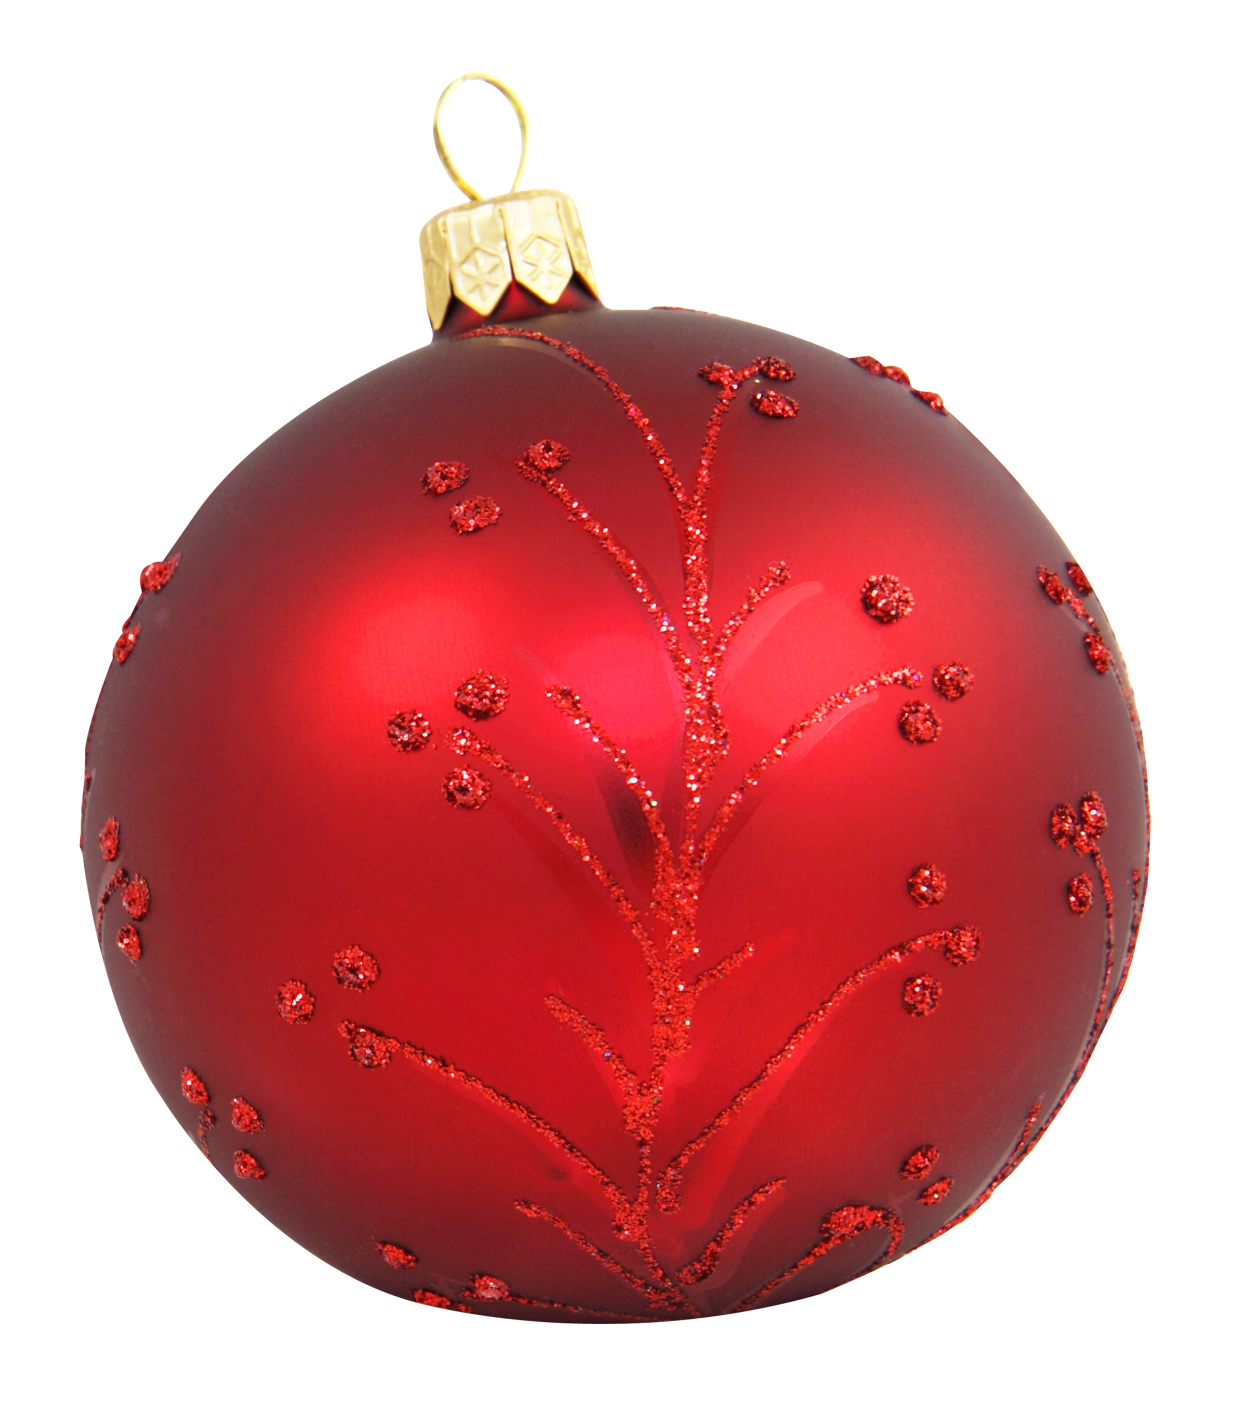 Red christmas ball png. Transparent images pluspng pngpluspngcom